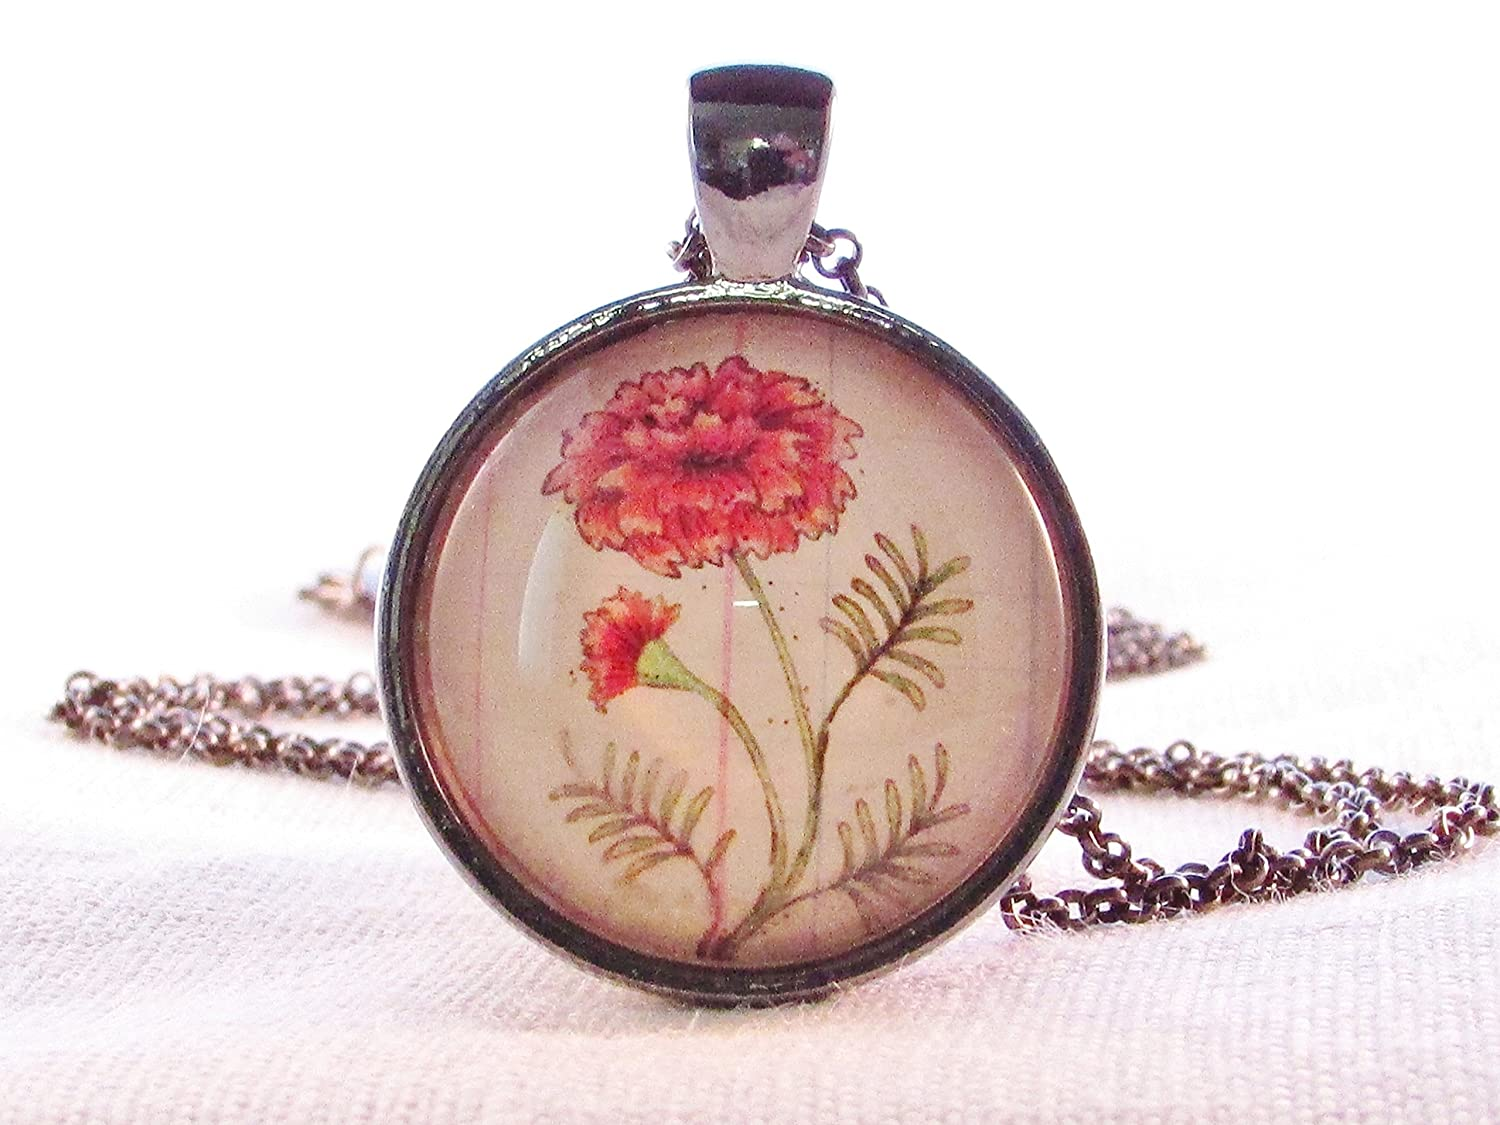 Necklace Round Glass Pendant Birthday Month October Flower Marigold